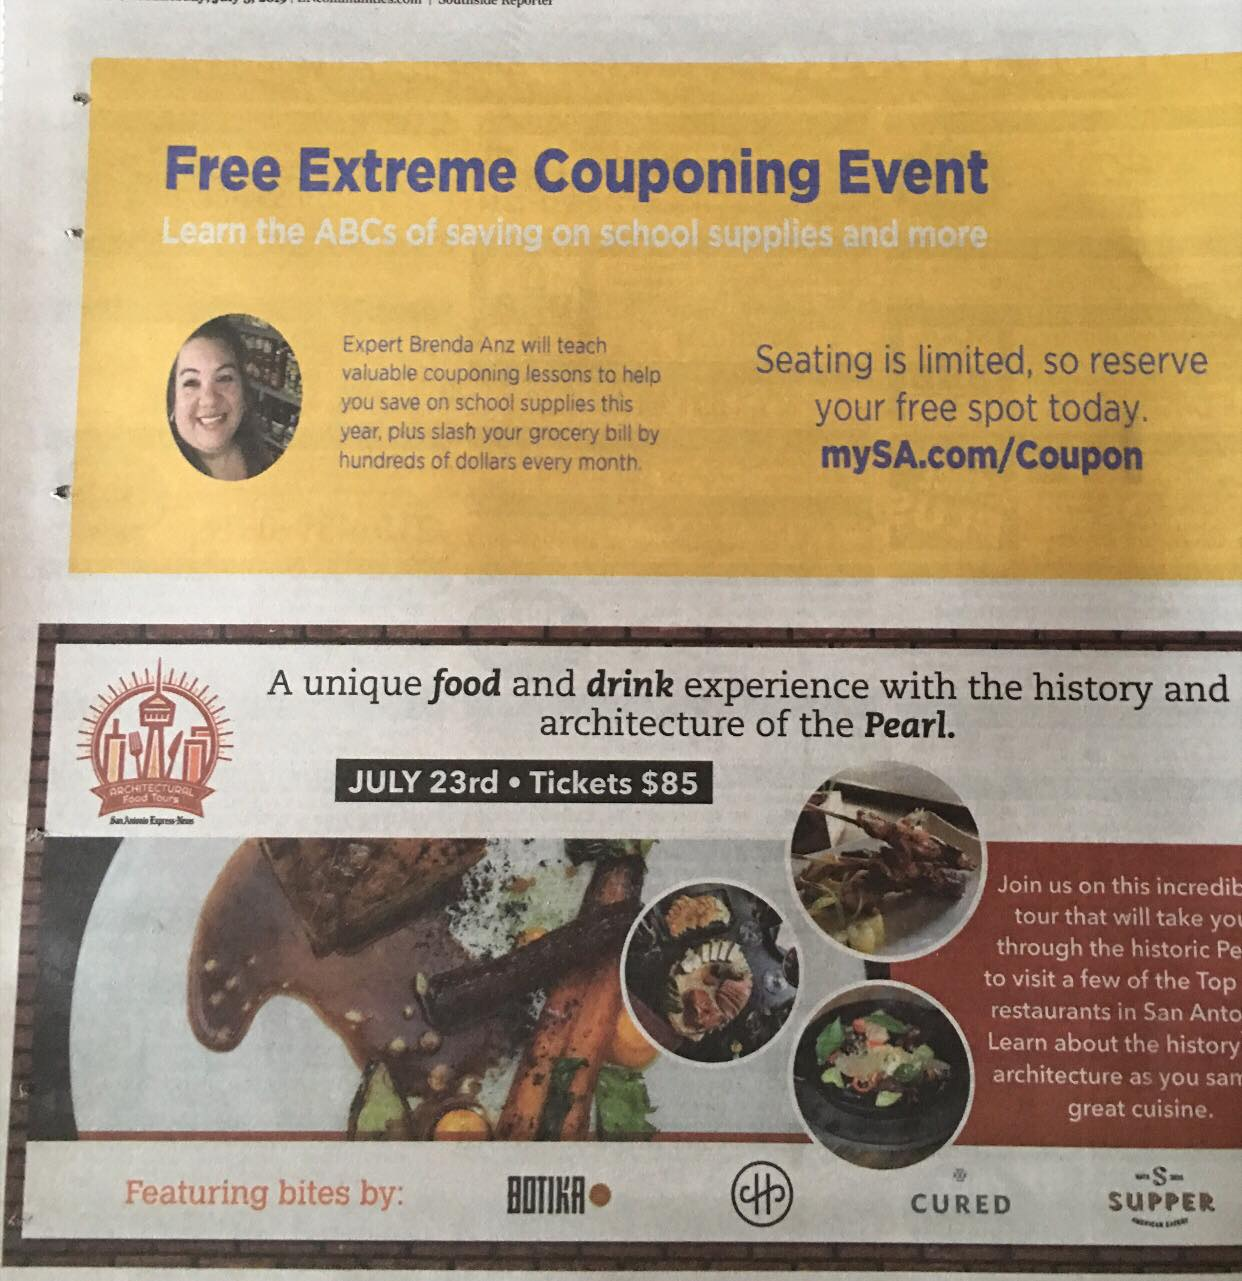 Check Your Southside Reporter To See Brenda Anz Inviting You To Join Her In A Free Coupon Class Sponsored By The San Antonio Express News July 20 22